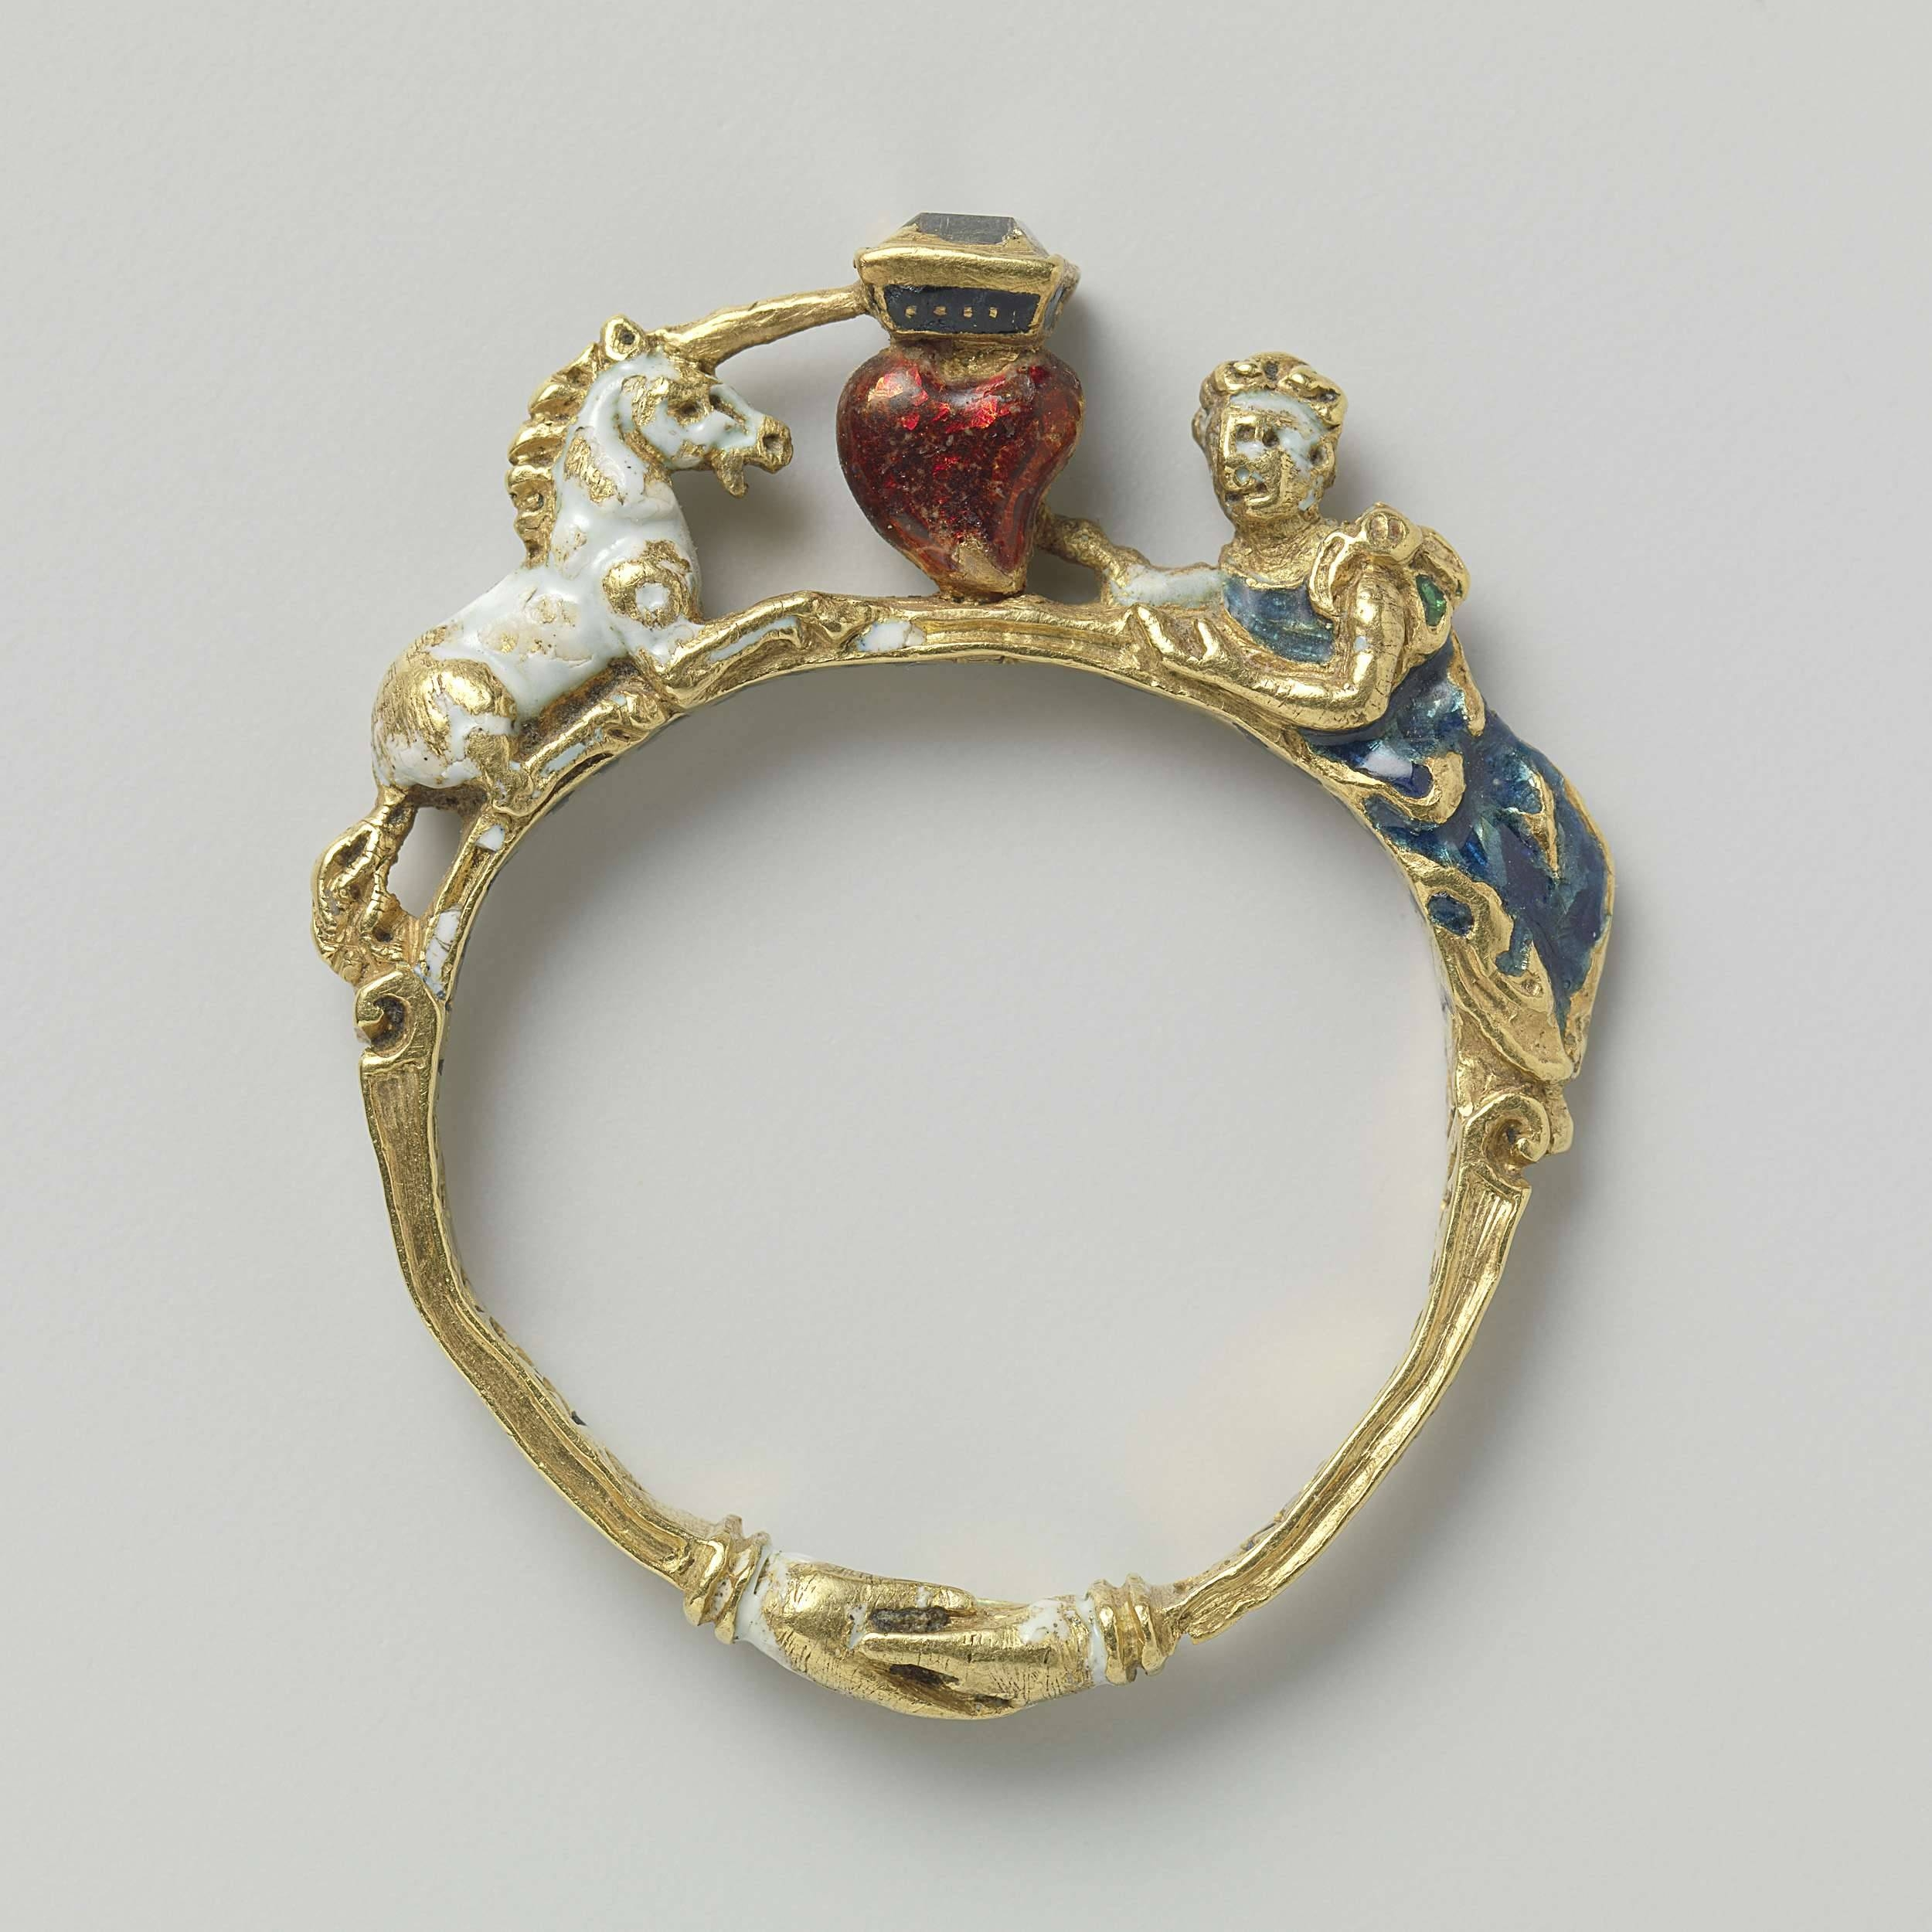 Rings: Ancient To Neoclassical – Aju Inside Renaissance Style Engagement Rings (View 11 of 15)